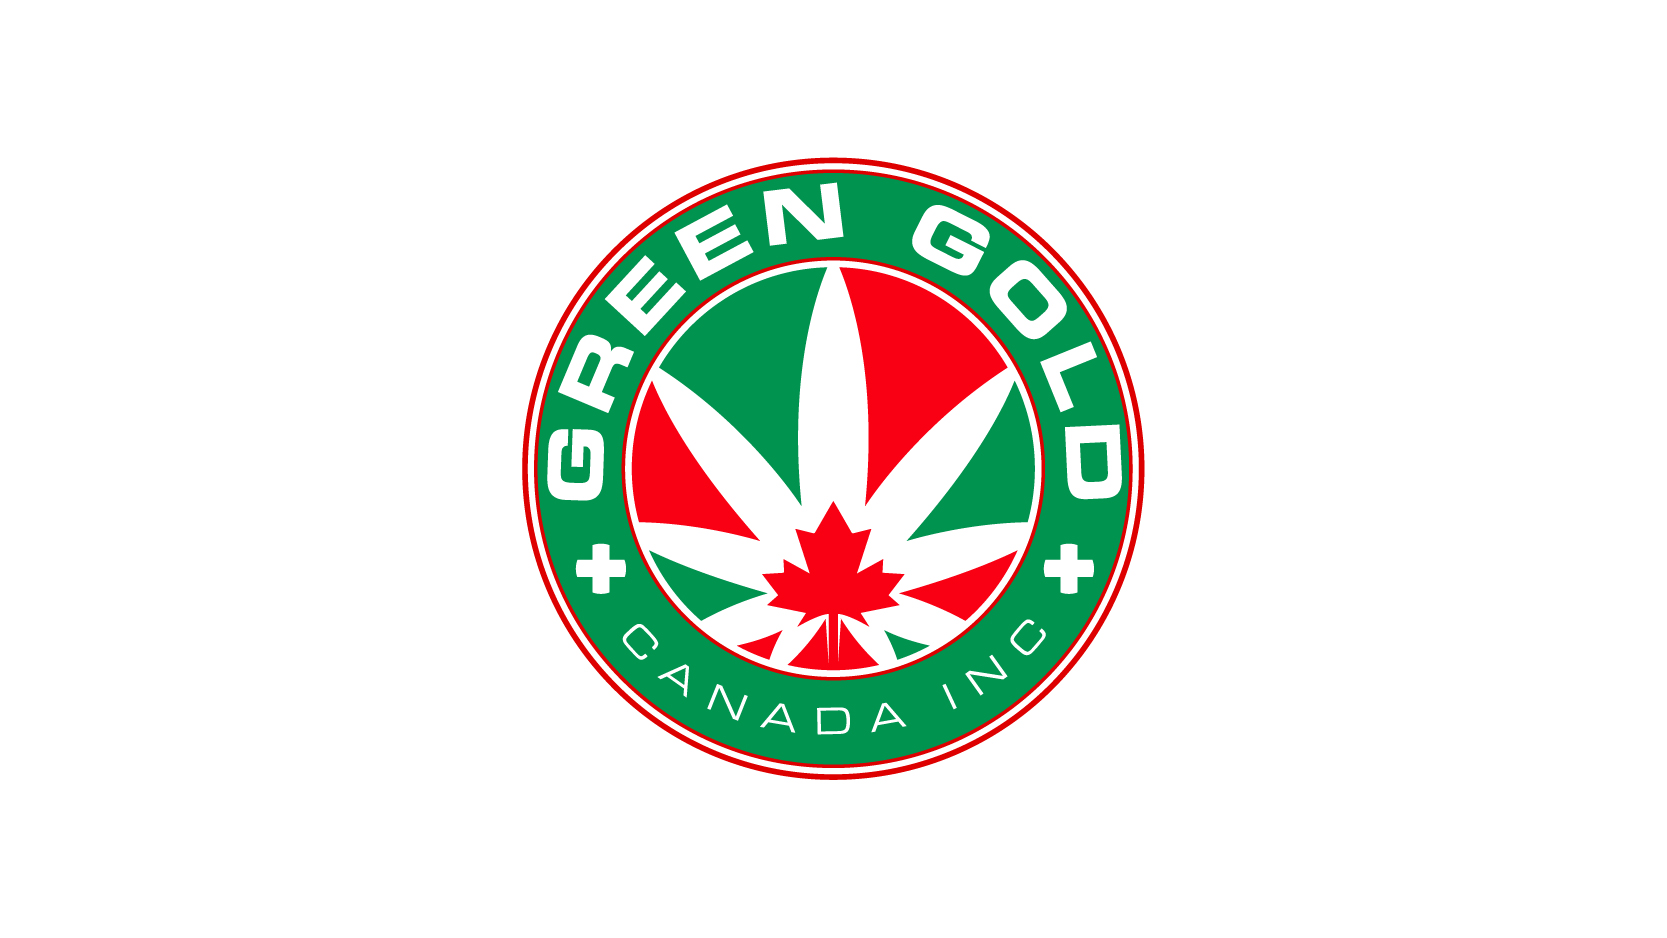 Green Gold Canada Inc.